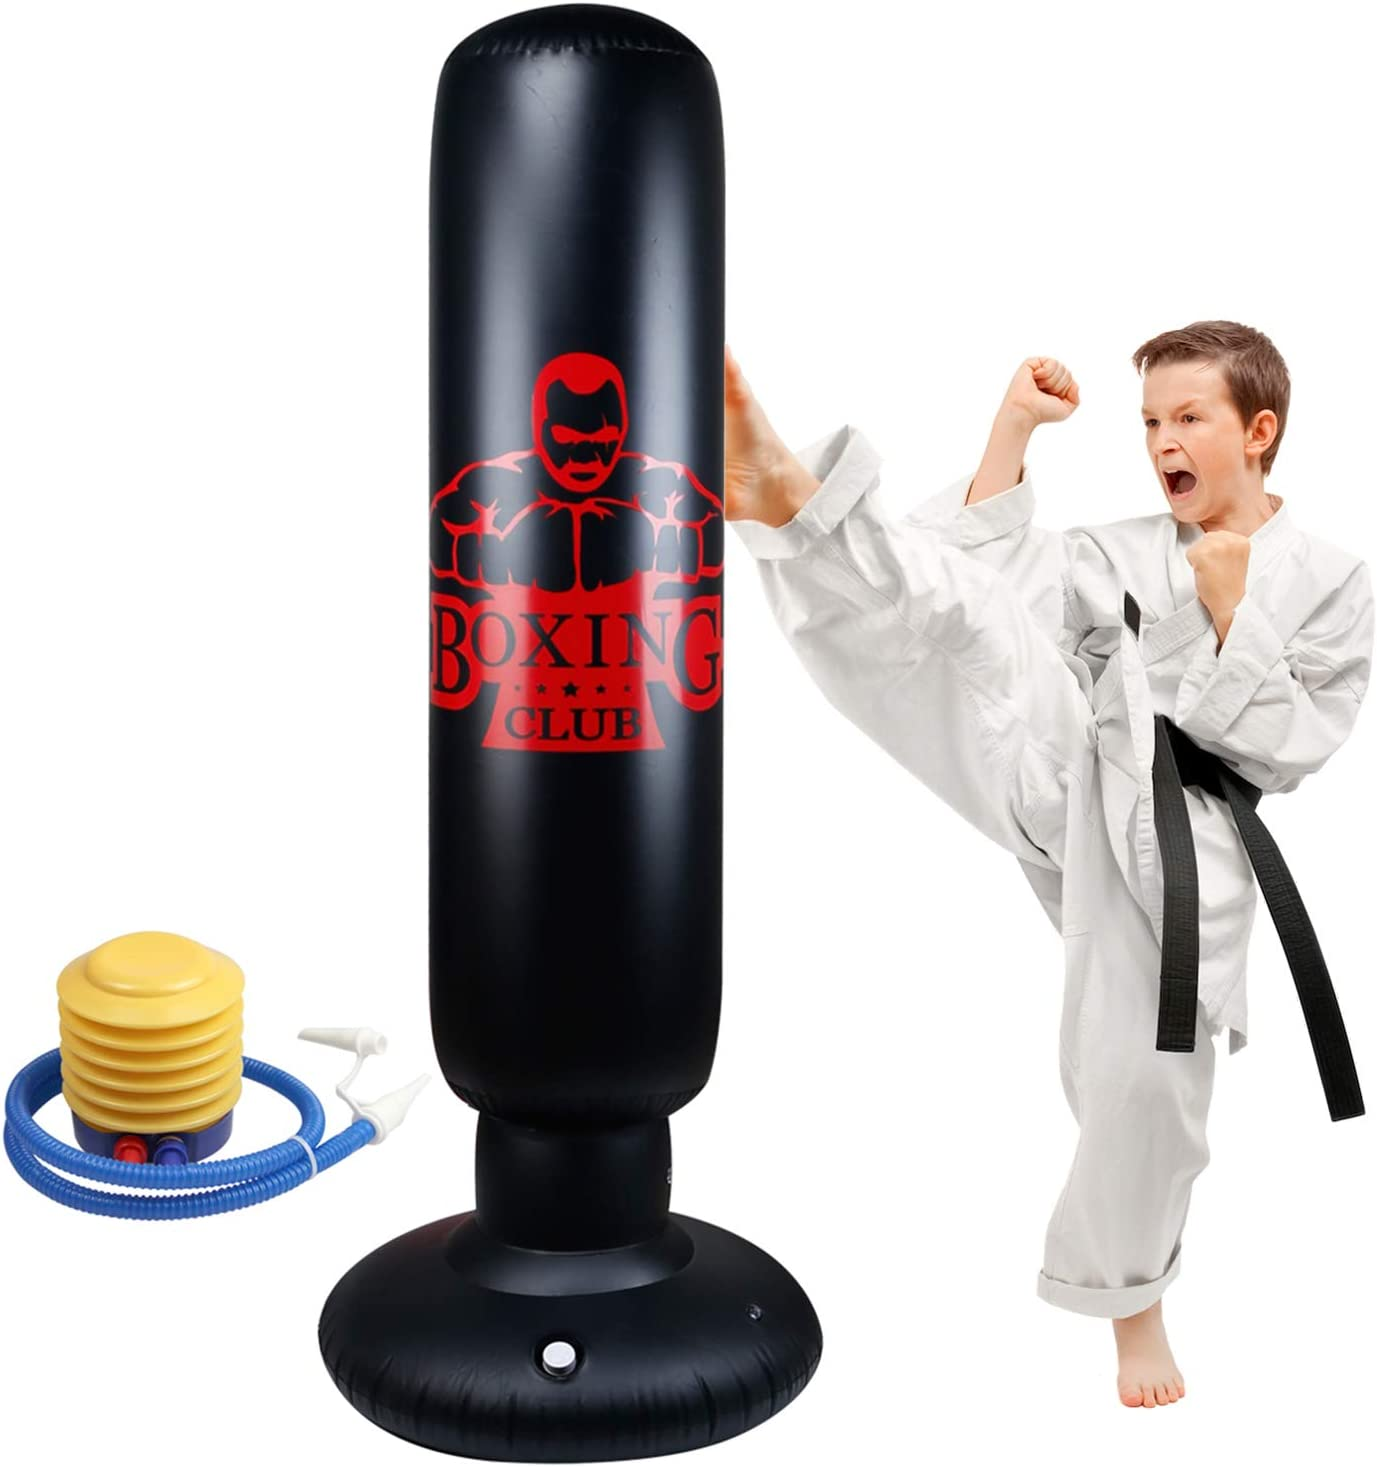 Locsee Punching Bag for Kids, Inflatable Freestanding Bop Bag for Adults and Kids Fitness Boxing Target Bag with Stand, Training Kickboxing Equipment (63 inch) : Sports & Outdoors